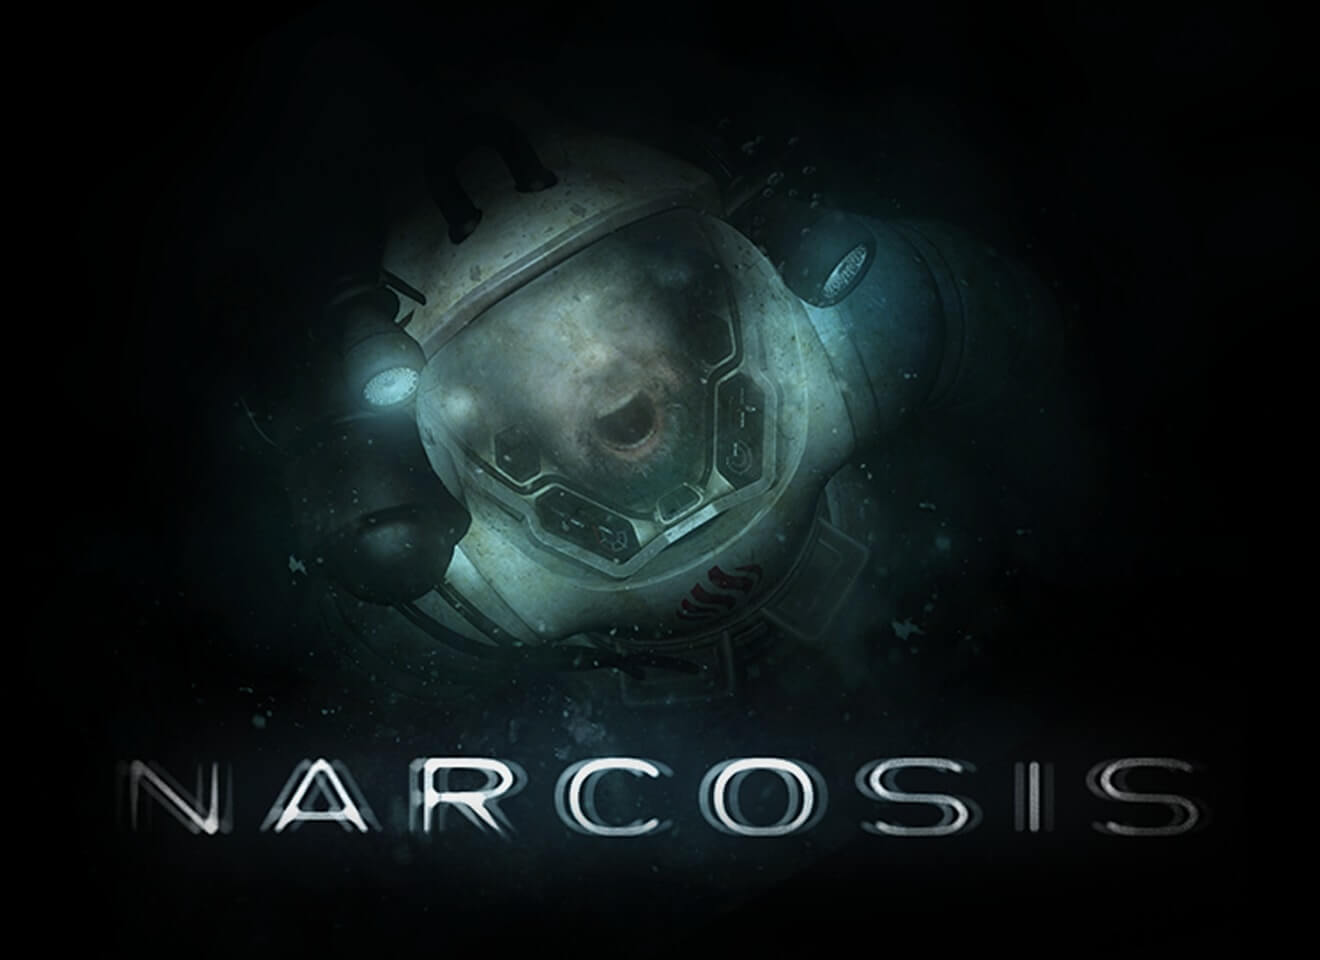 Narcosis 1 - Contest: We're Giving Away 5 Steam Keys For Narcosis!